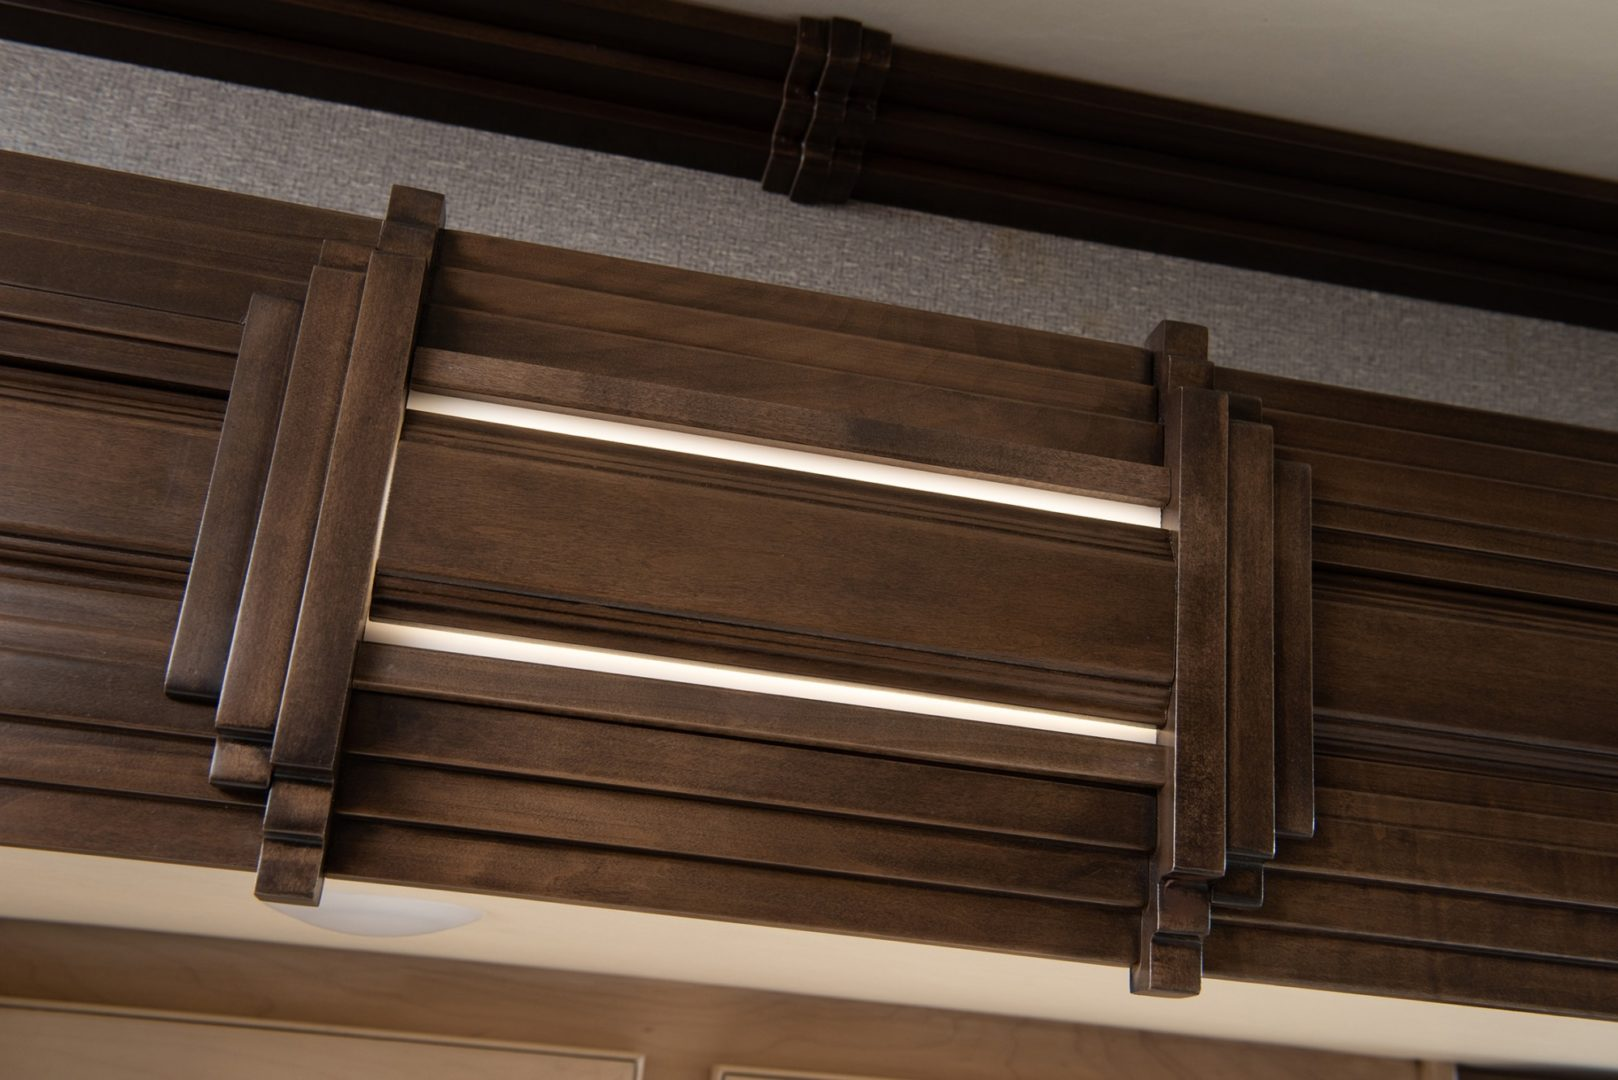 Cognac solid wood trim